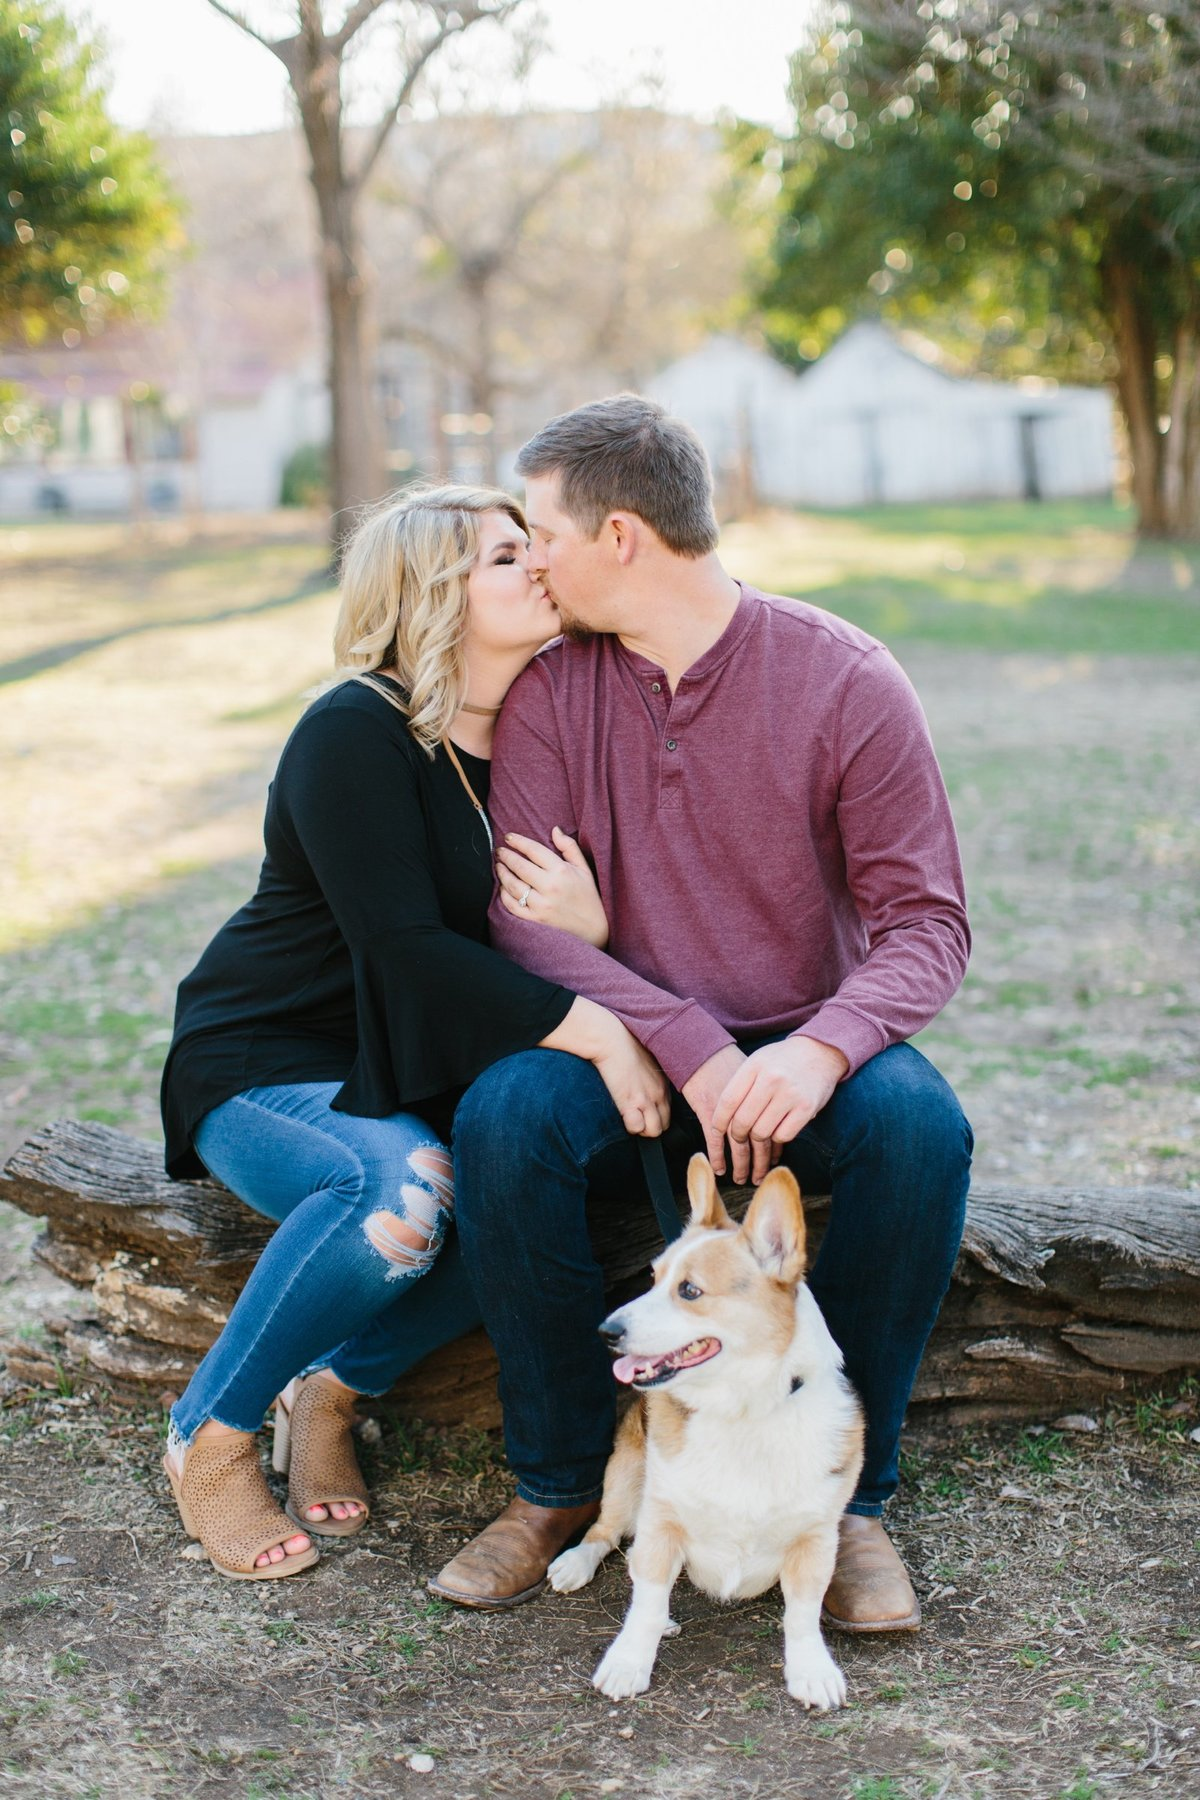 Film Engagement Session in Gruene, Texas. Bride wearing black top and distressed ripped jeans top, groom is wearing a burgundy long sleeve top and jeans. With their dog, a corgi!